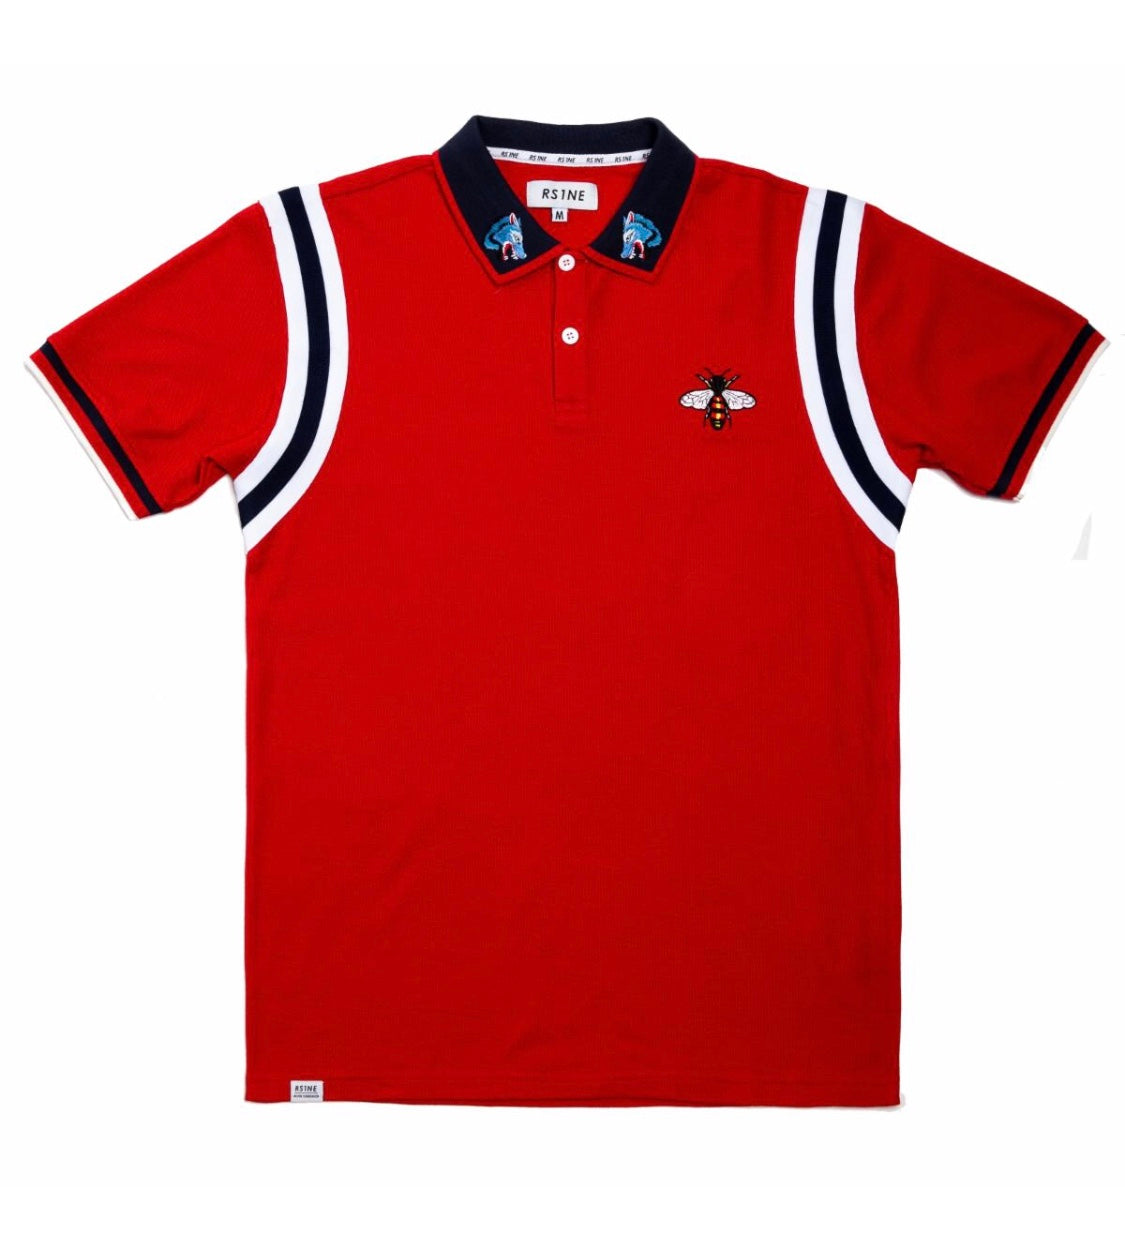 RISE AS 1NE Tiger & Butterfly Polo In Red